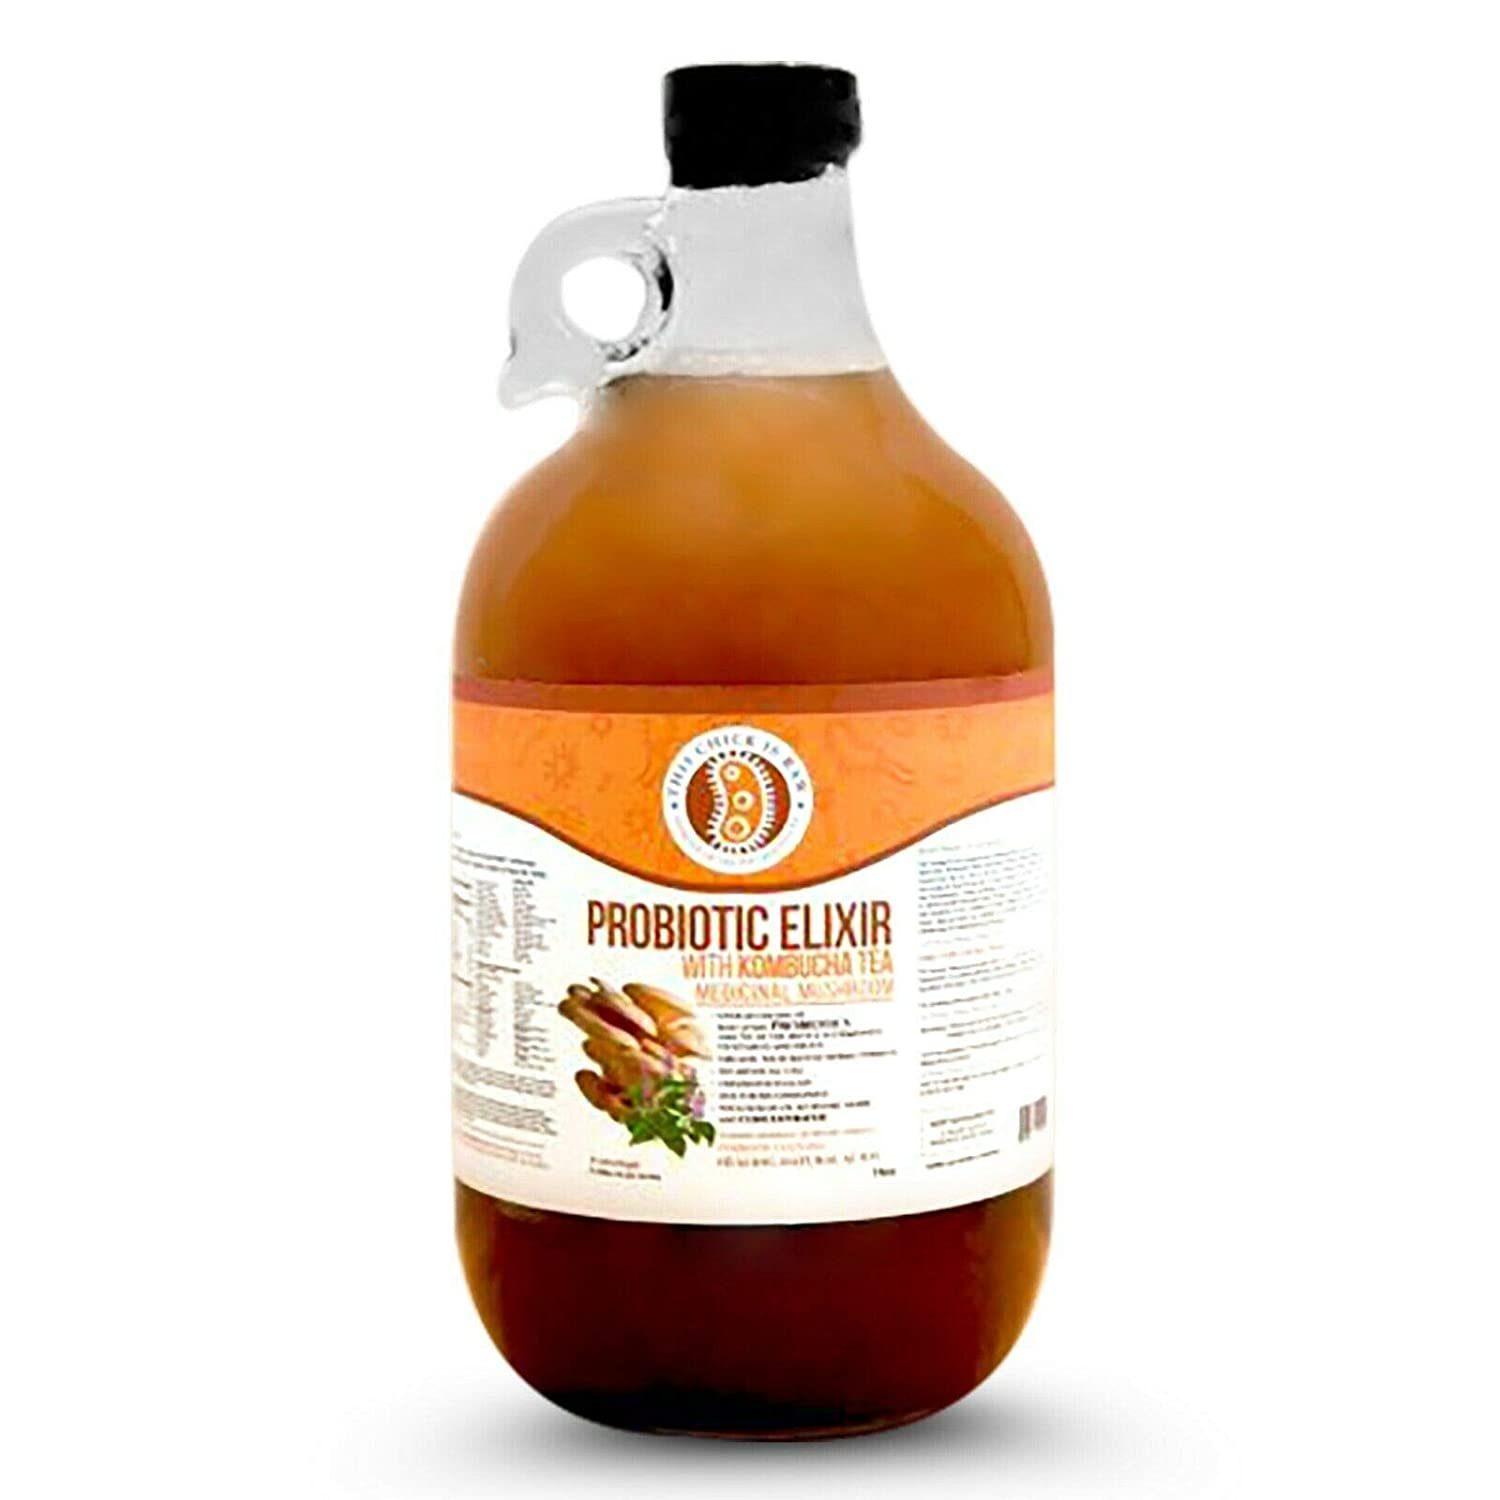 Probiotic Elixir Mushroom w Kombucha Tea This Is Chick Raw Over item handling Cheap mail order shopping H by